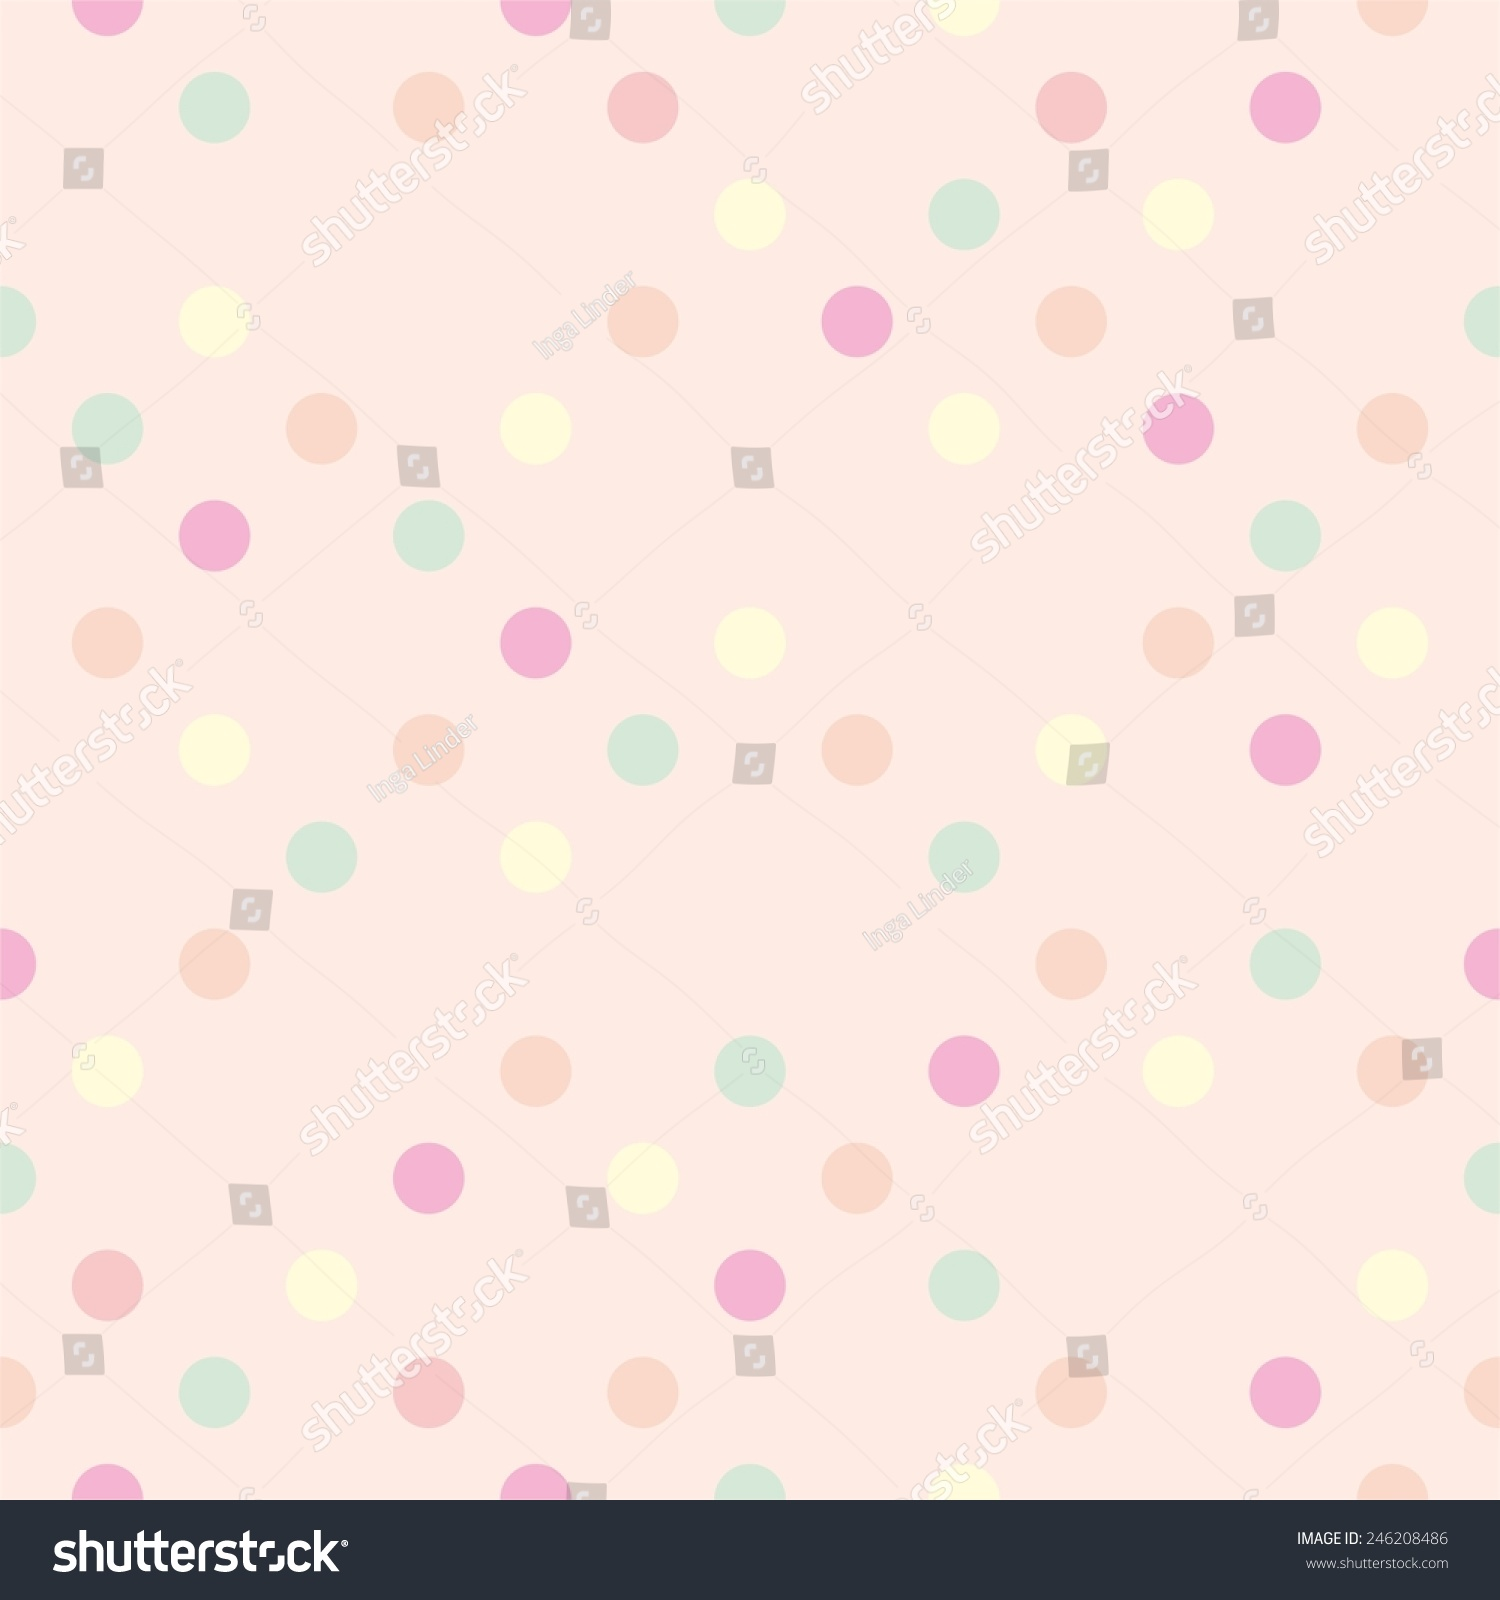 Pics photos pink polka dot s wallpaper - Pastel Vector Polka Dots On Pink Background Seamless Pattern Or Tile Decoration Wallpaper